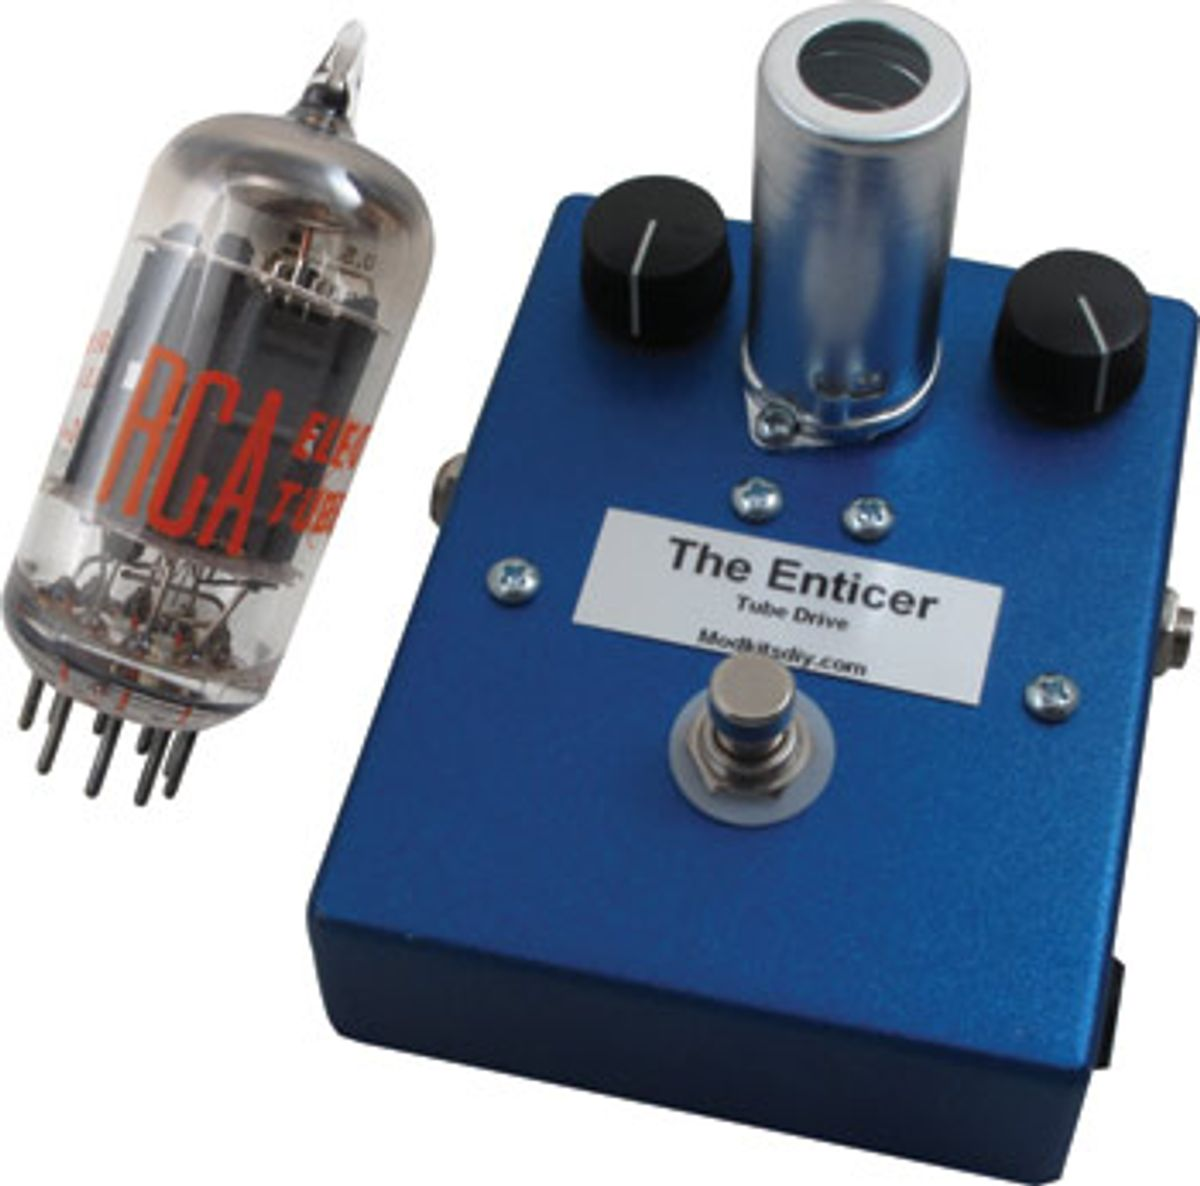 Mod Kits Releases The Enticer